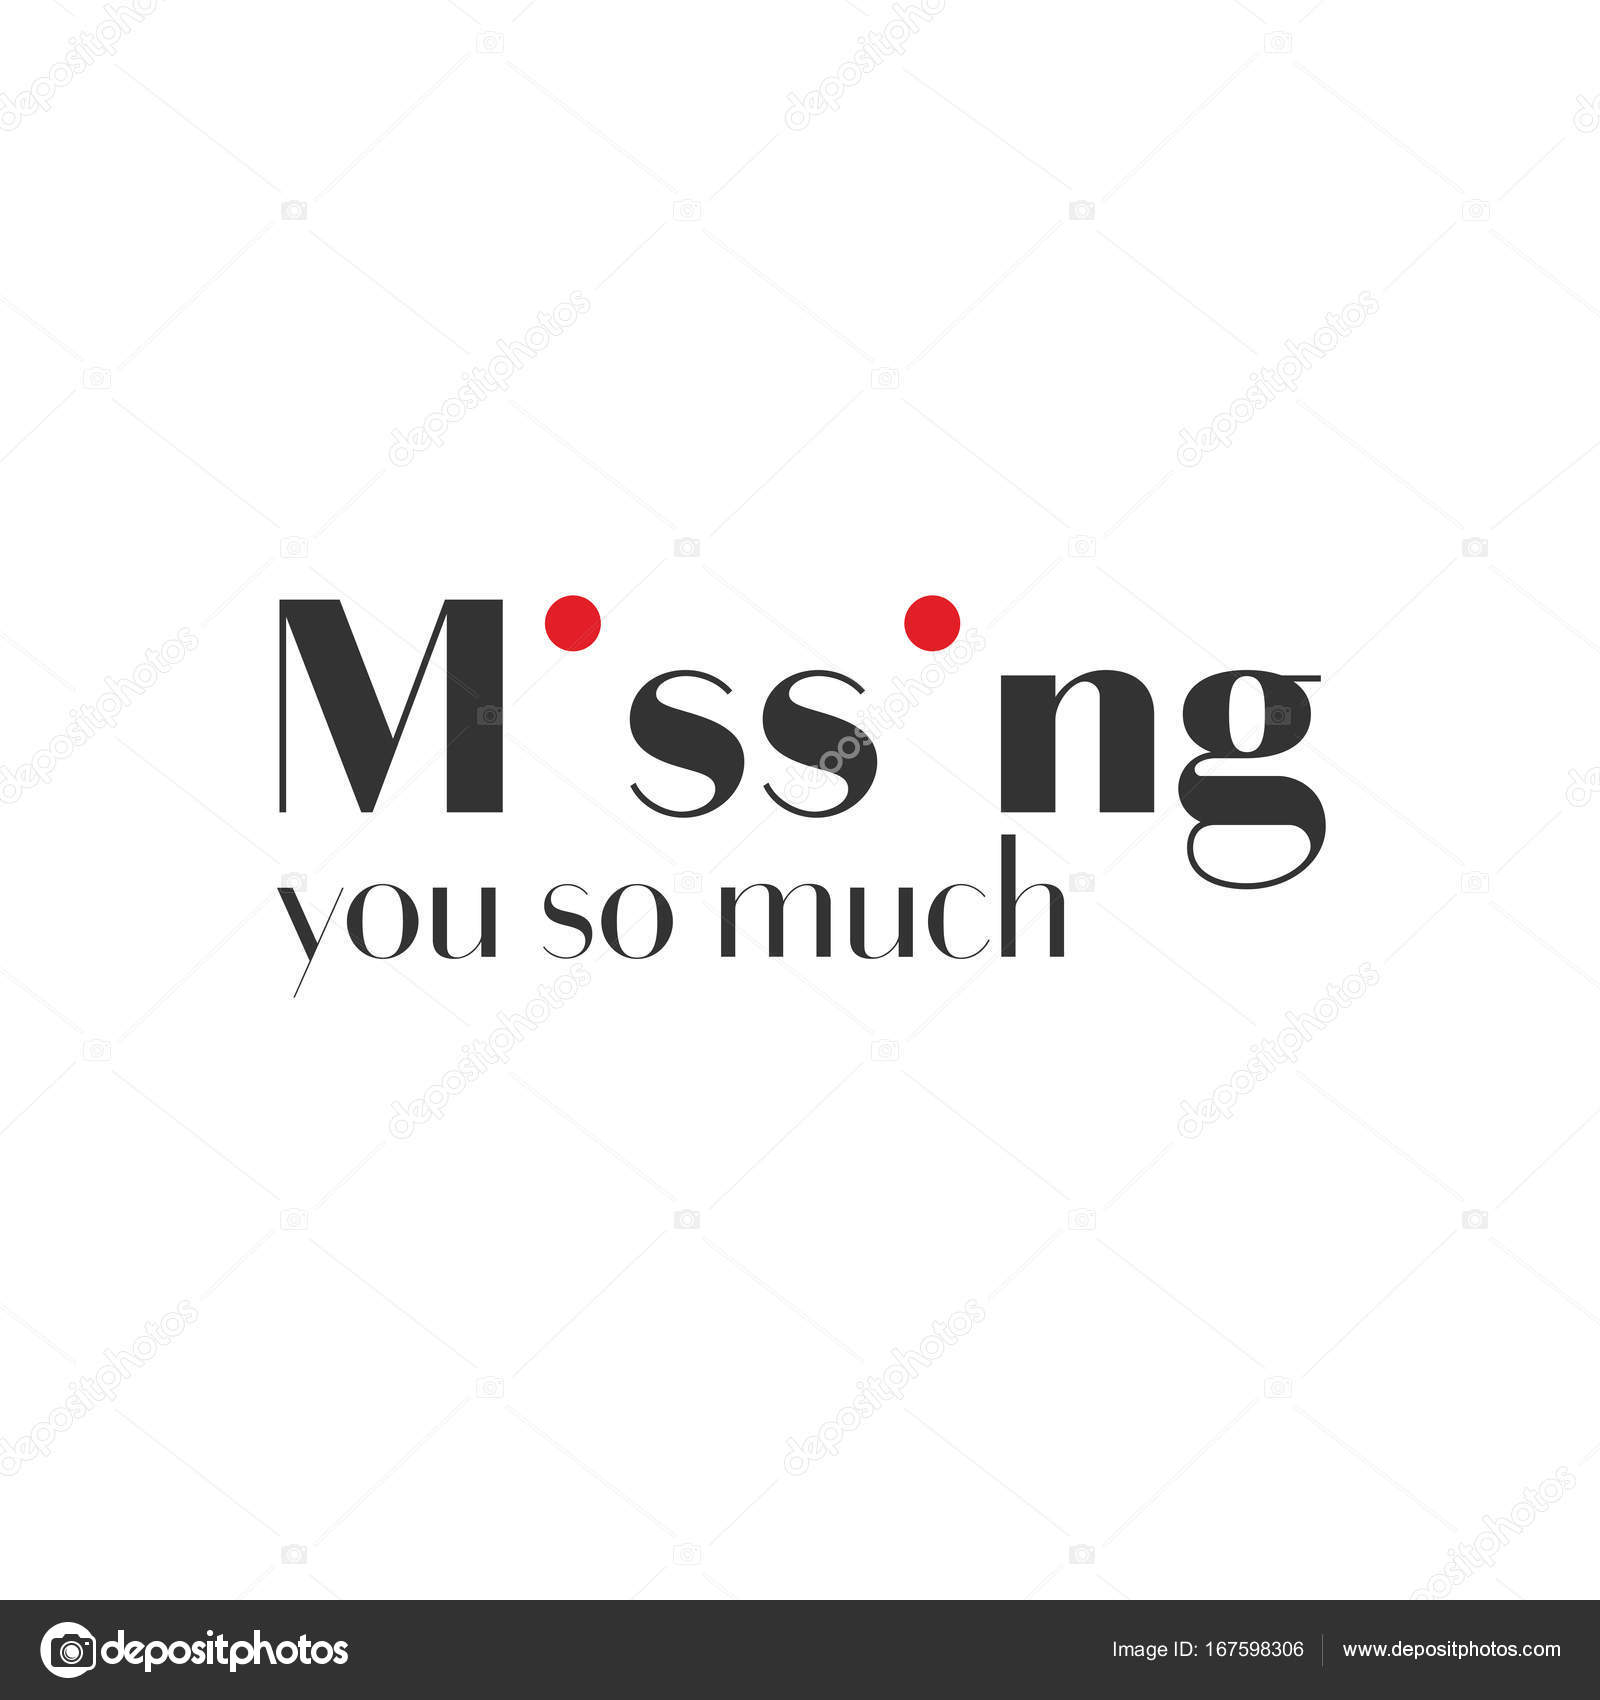 Missing you image quotes | Inspirational missing you so much